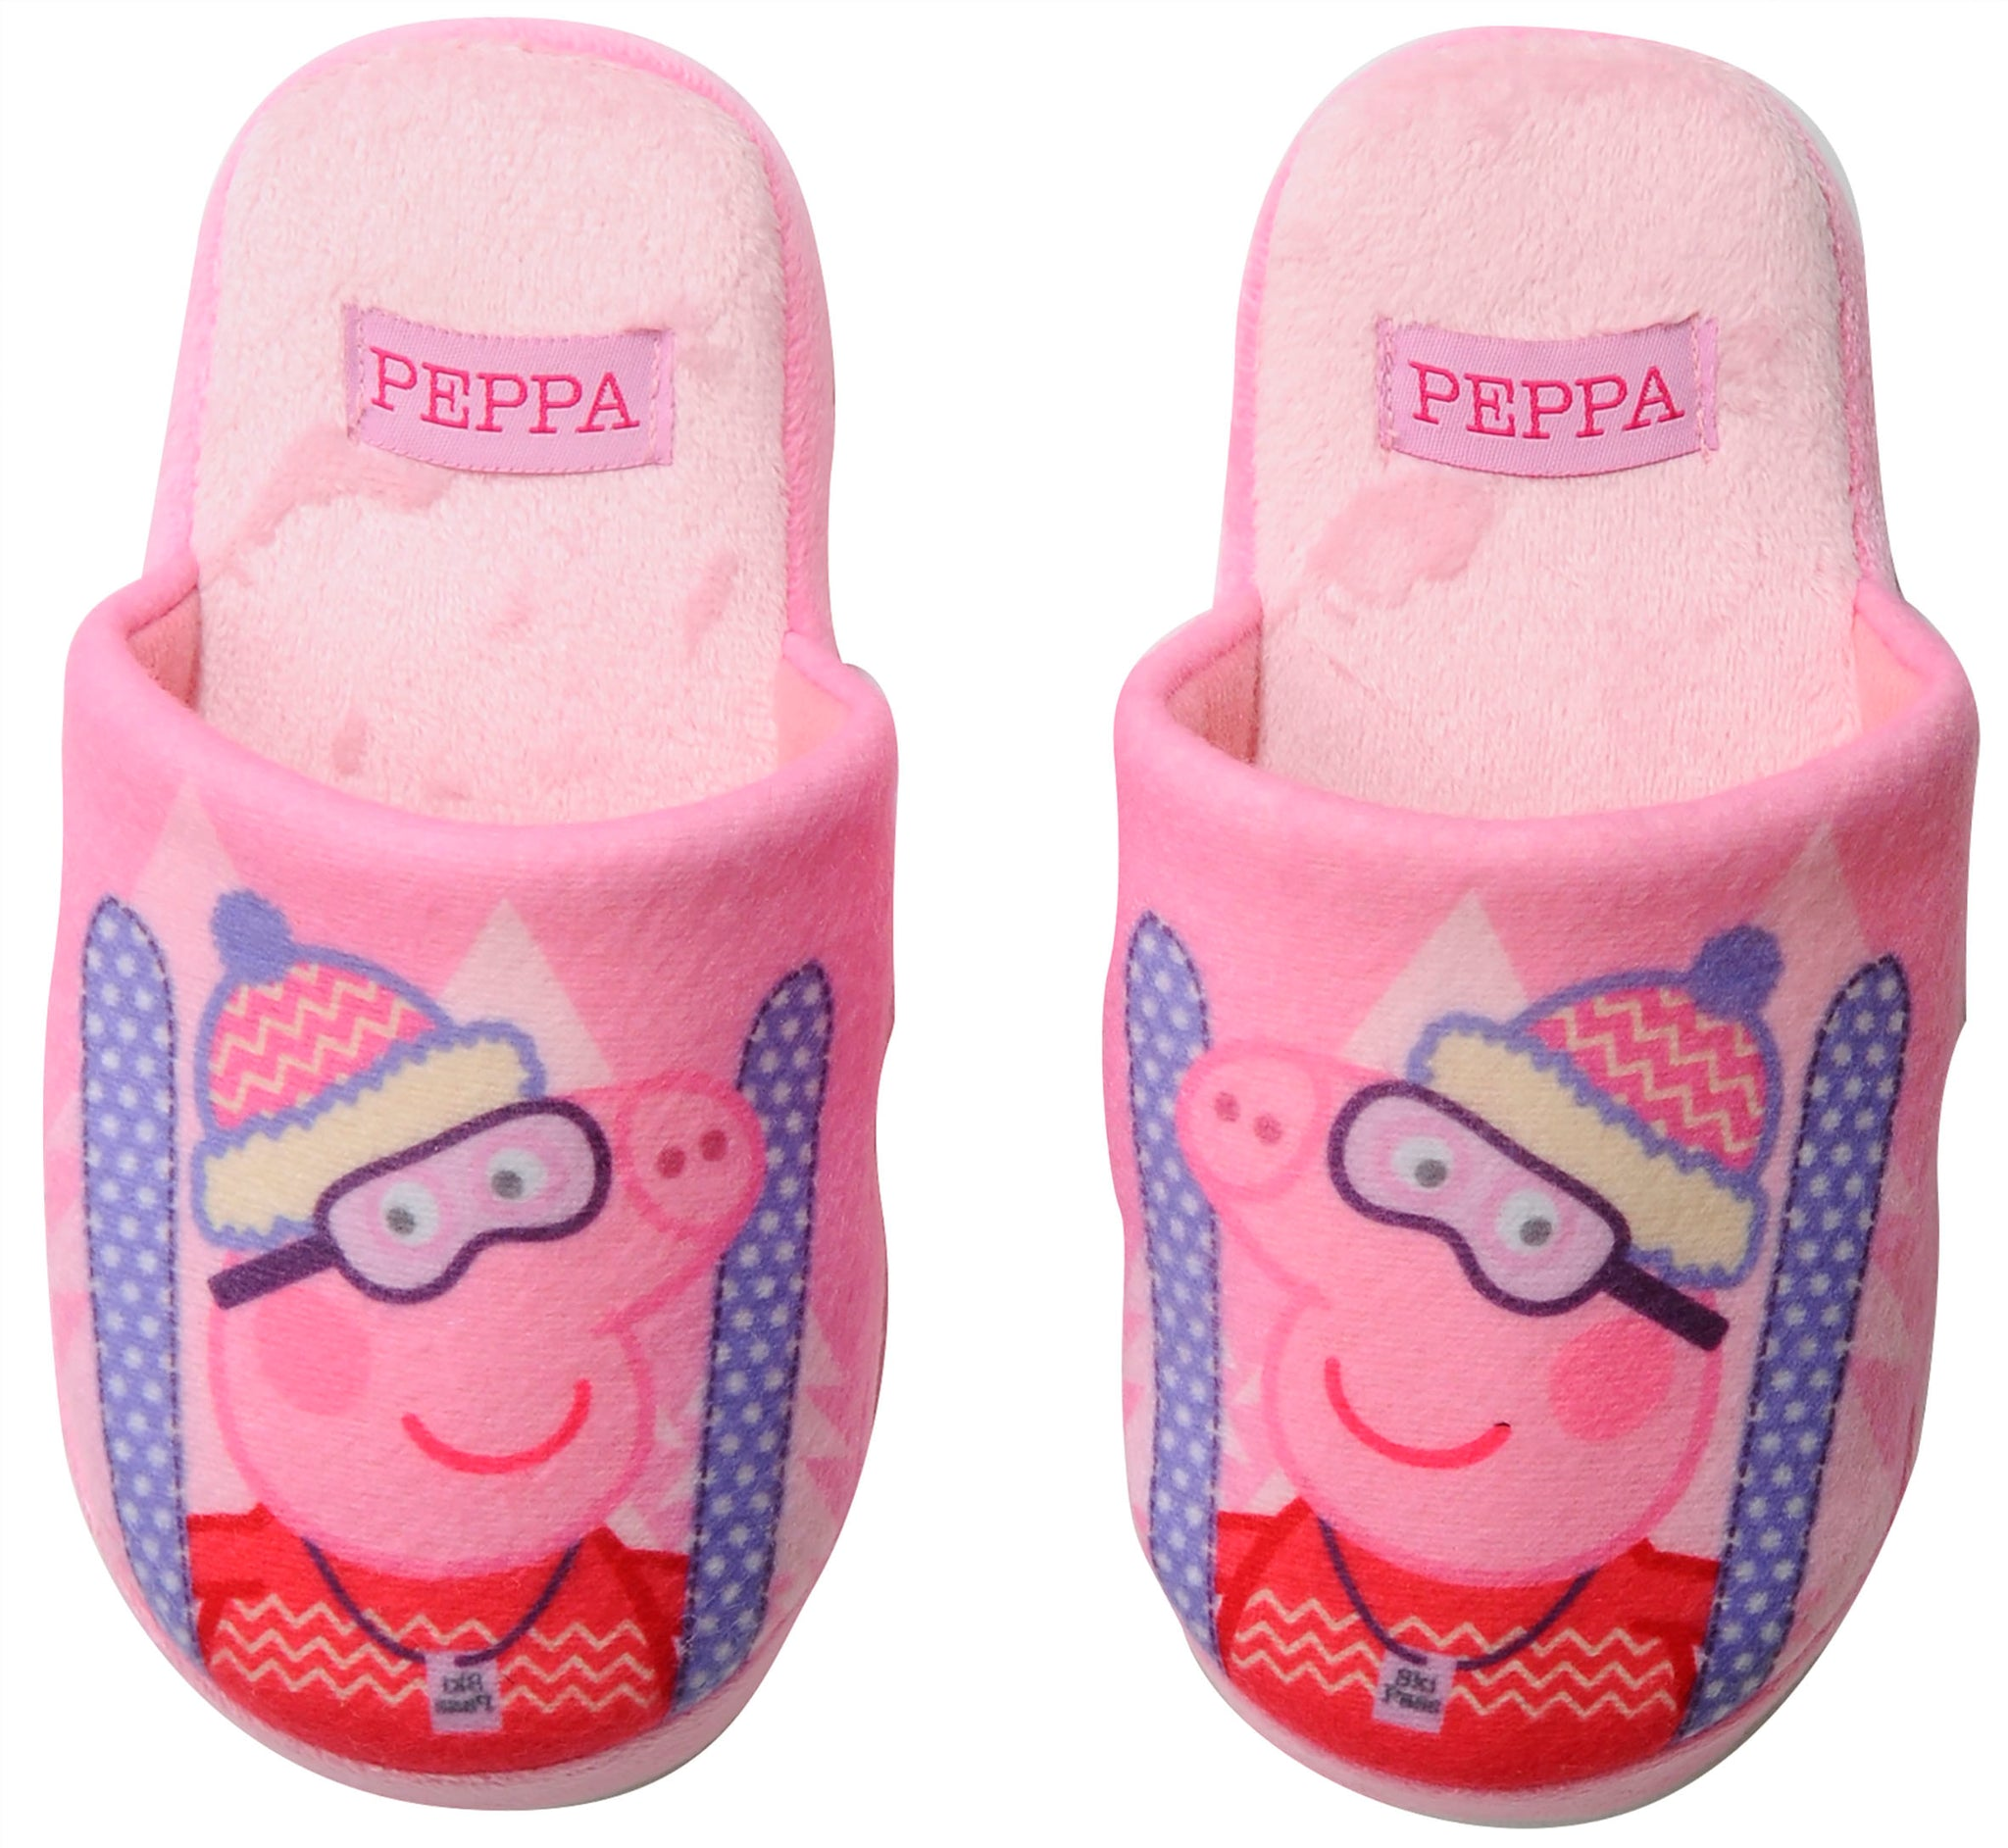 Peppa Pig slippers with ski Peppa